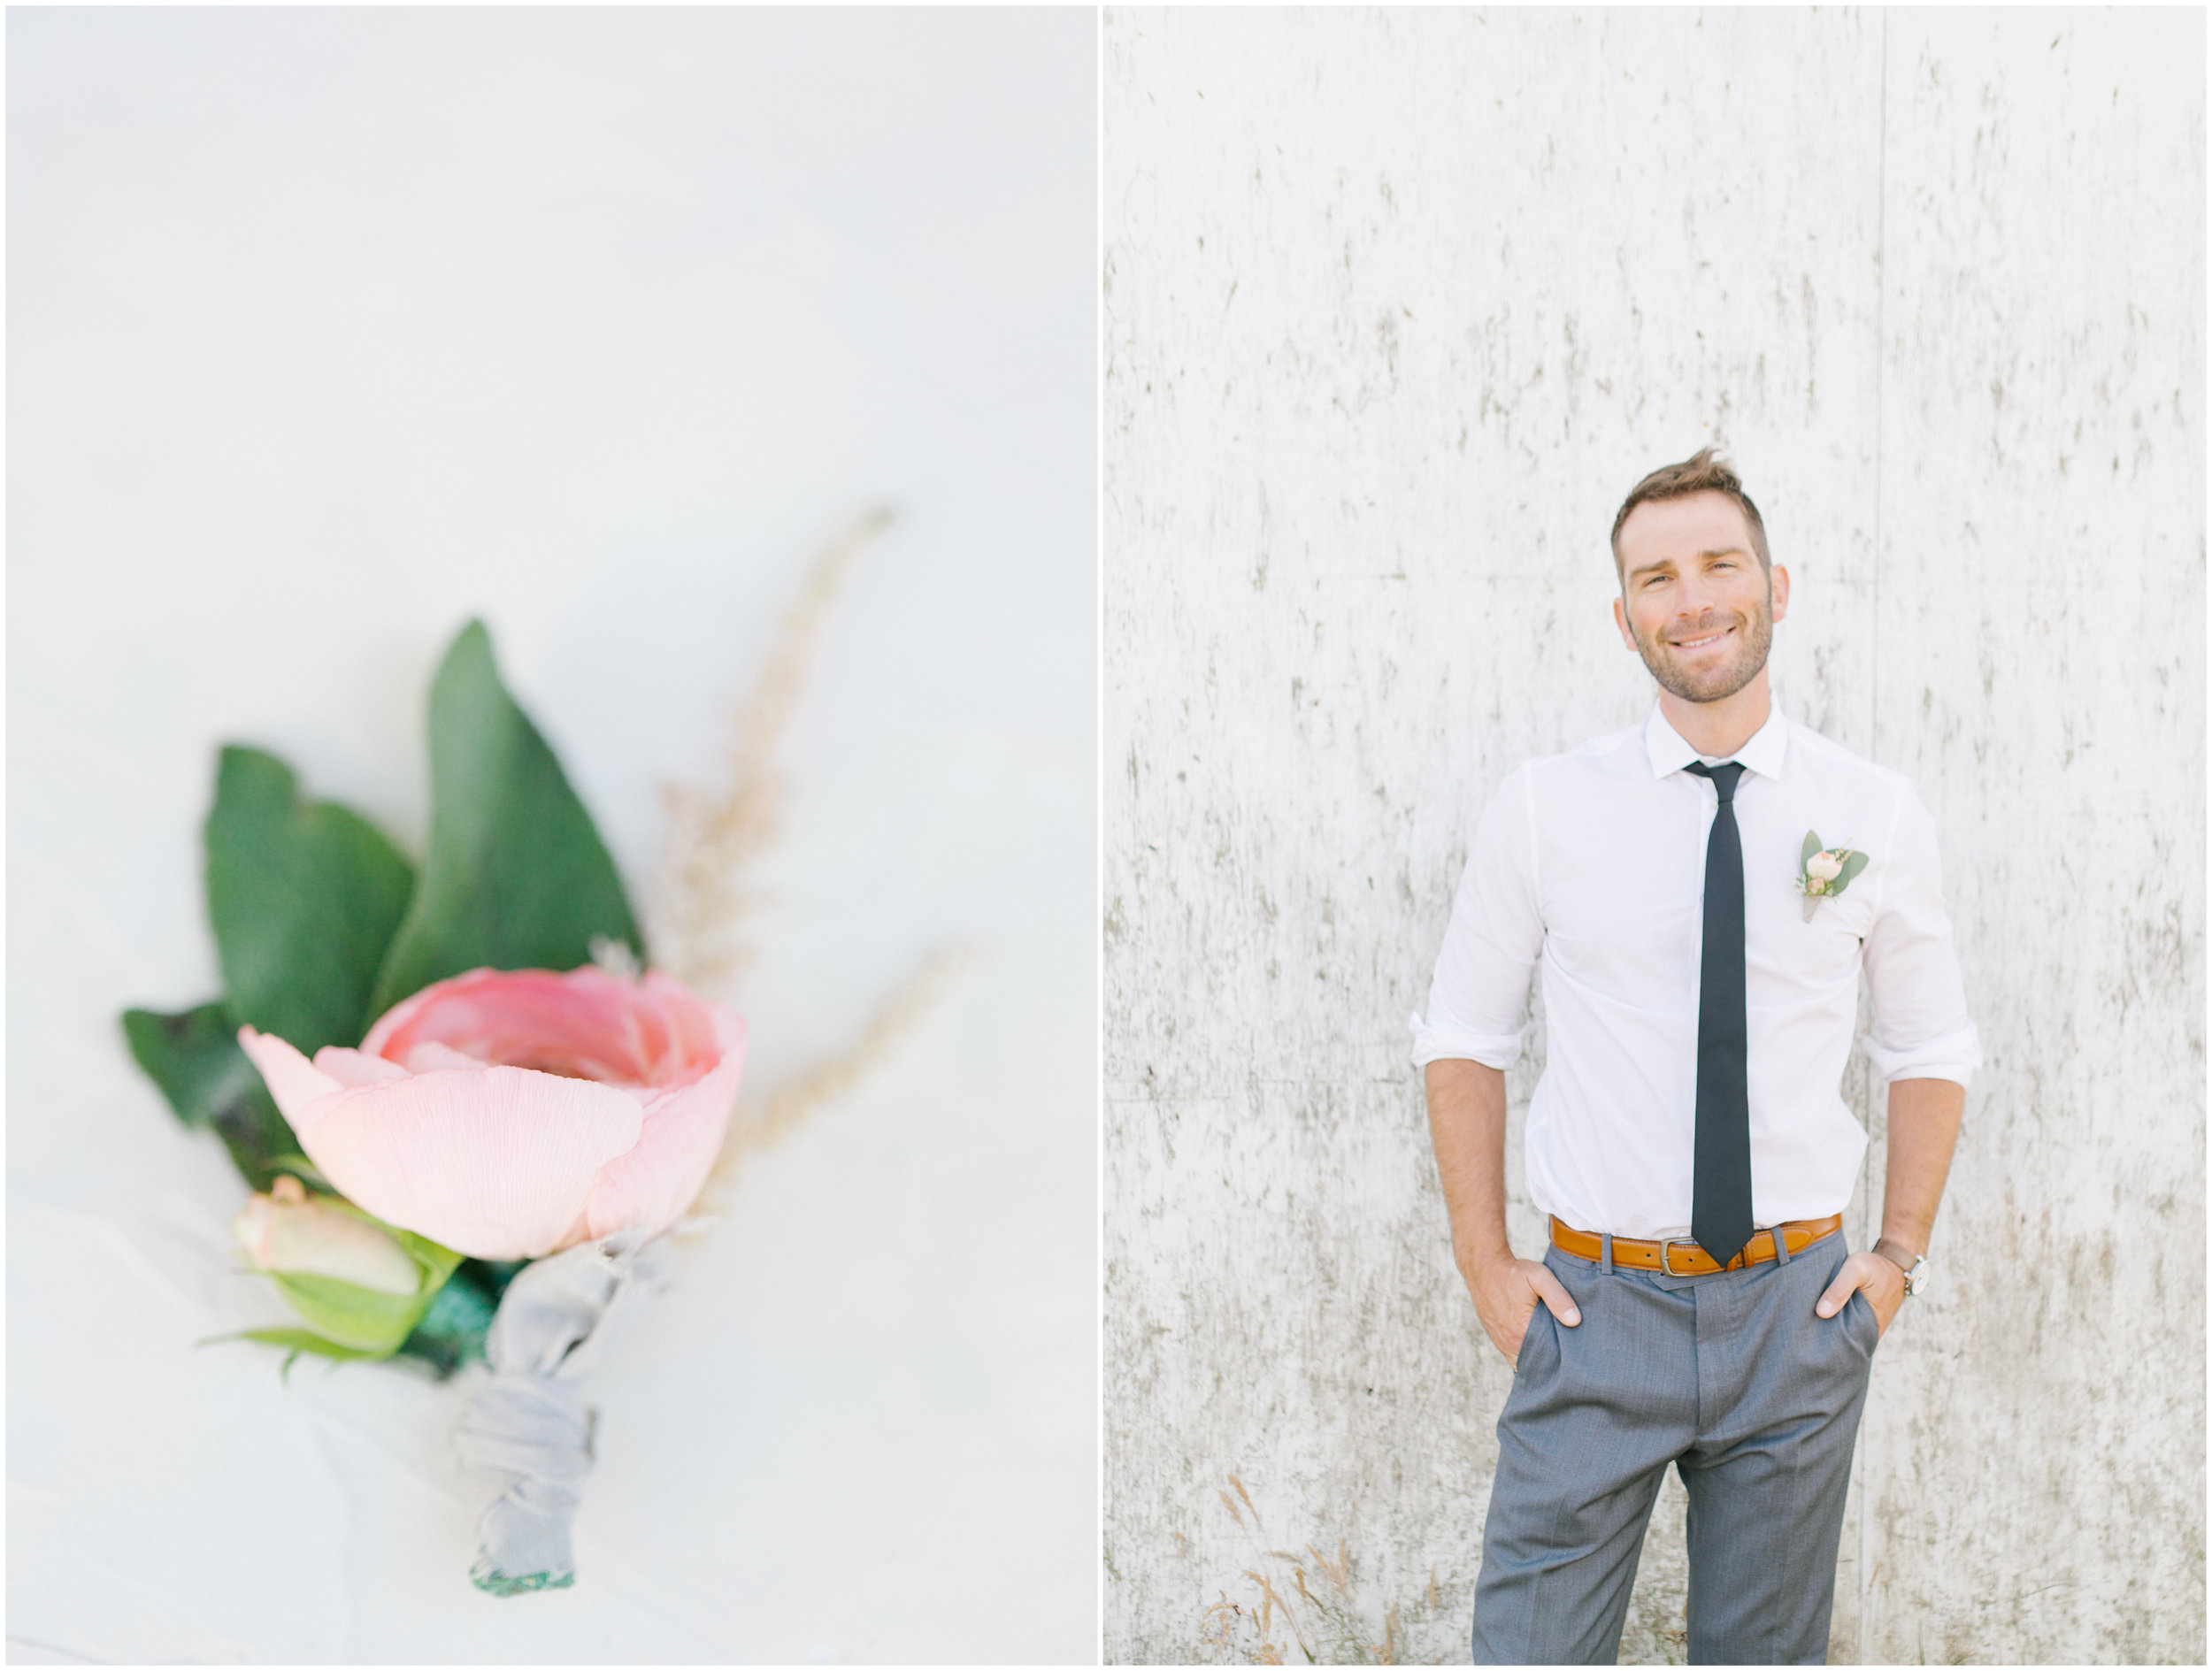 Dream Chasers Workshop on Rose Ranch | Emma Rose Company Education | Styled Shoot on a Ranch | Cattle Ranch Wedding | Rose Ranch Washington Wedding | Dream Chasers with Cameras | Styled Shoot.jpg